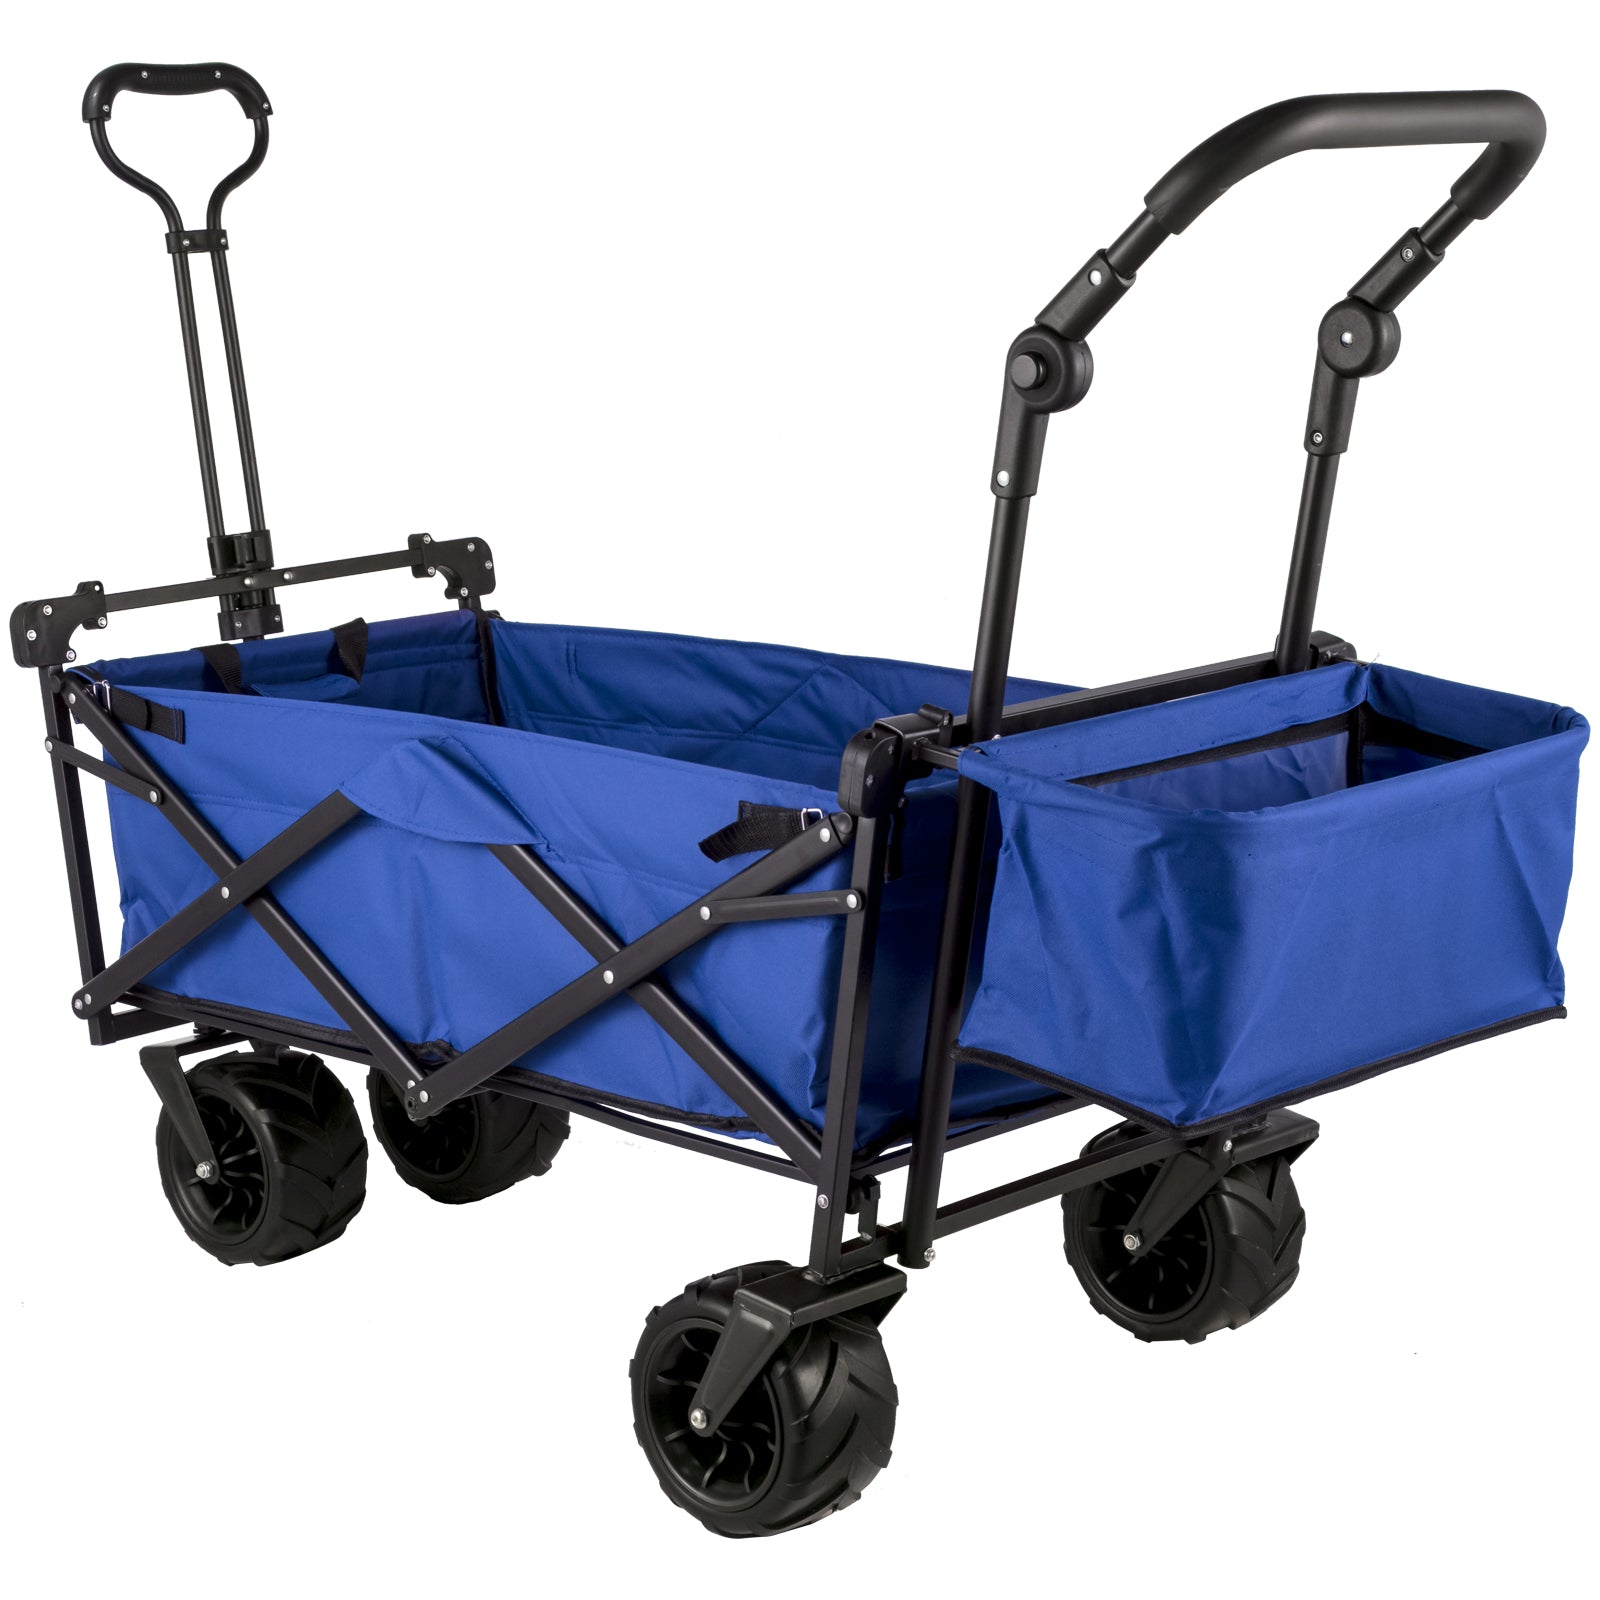 Vevor Folding Wagon Cart, Collapsible Folding Garden Cart W/ Canopy